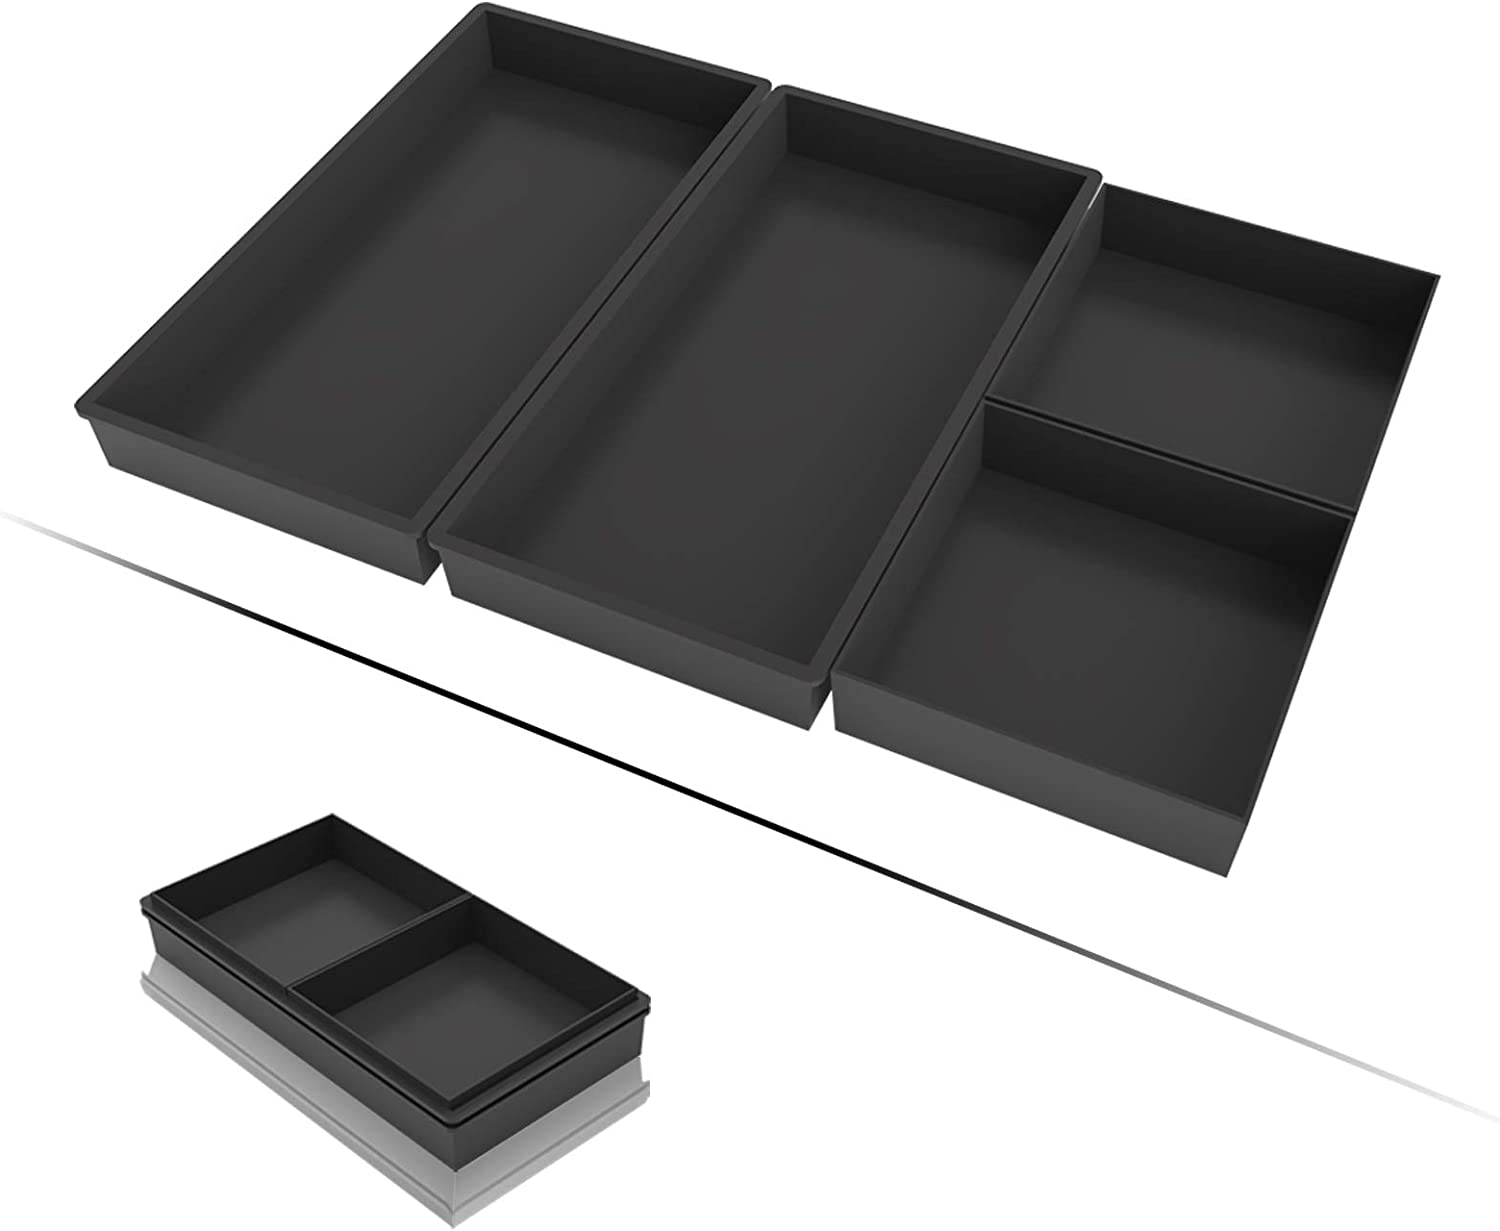 Baking Pans Set, Sheet Pan Dividers Silicone Baking Trays Nonstick Cooking Pans, Upgraded Oven Safe Heat Resistant Bakeware Accessories for Half Sheet Pan, Easily Clean Dishwasher Safe 4 Pcs Set